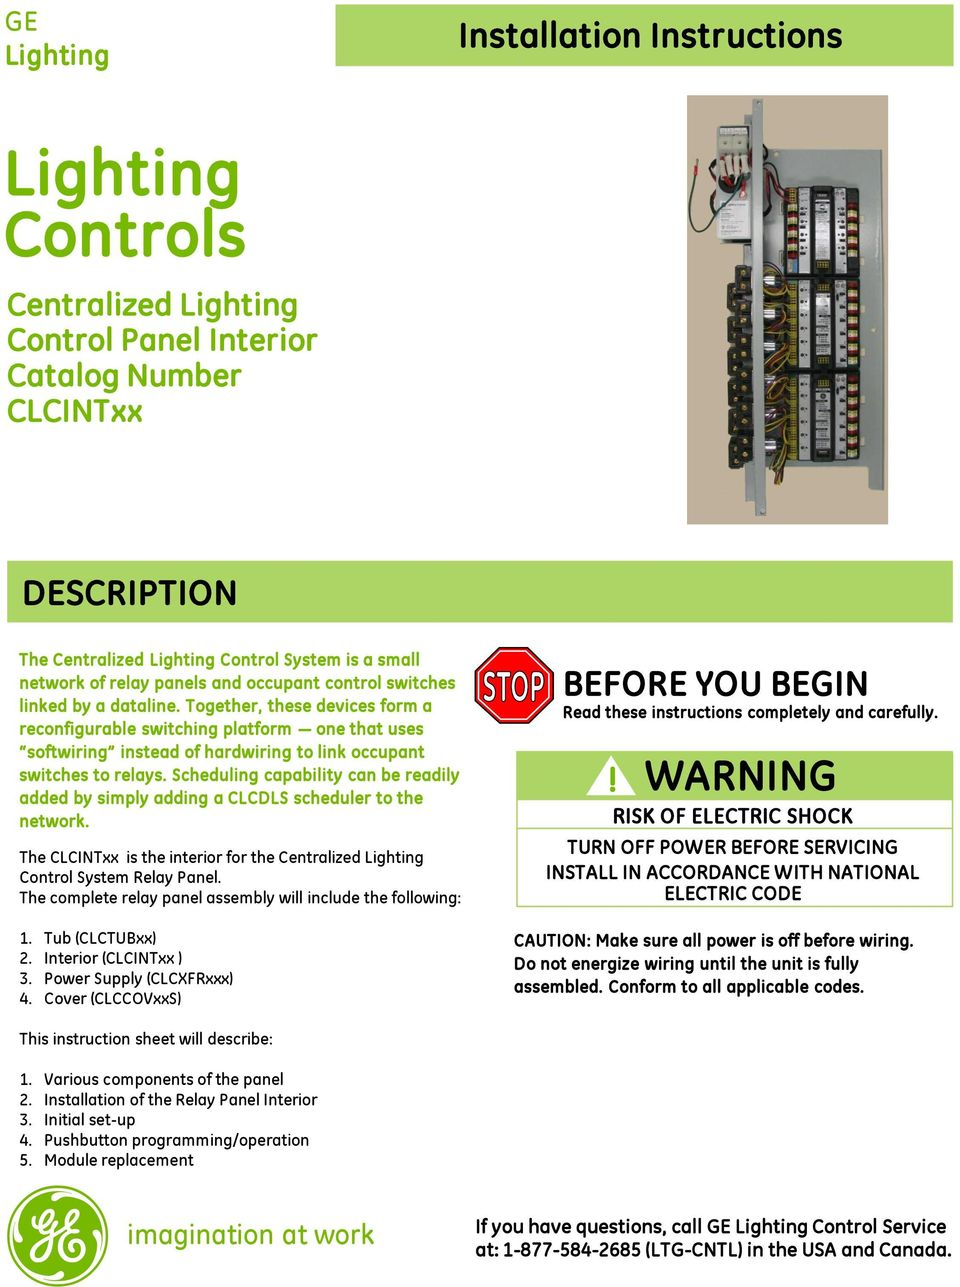 Lighting Controls Warning Risk Of Electric Shock Installation Like To Replace The Onoff Switched Control With Relays Transcription